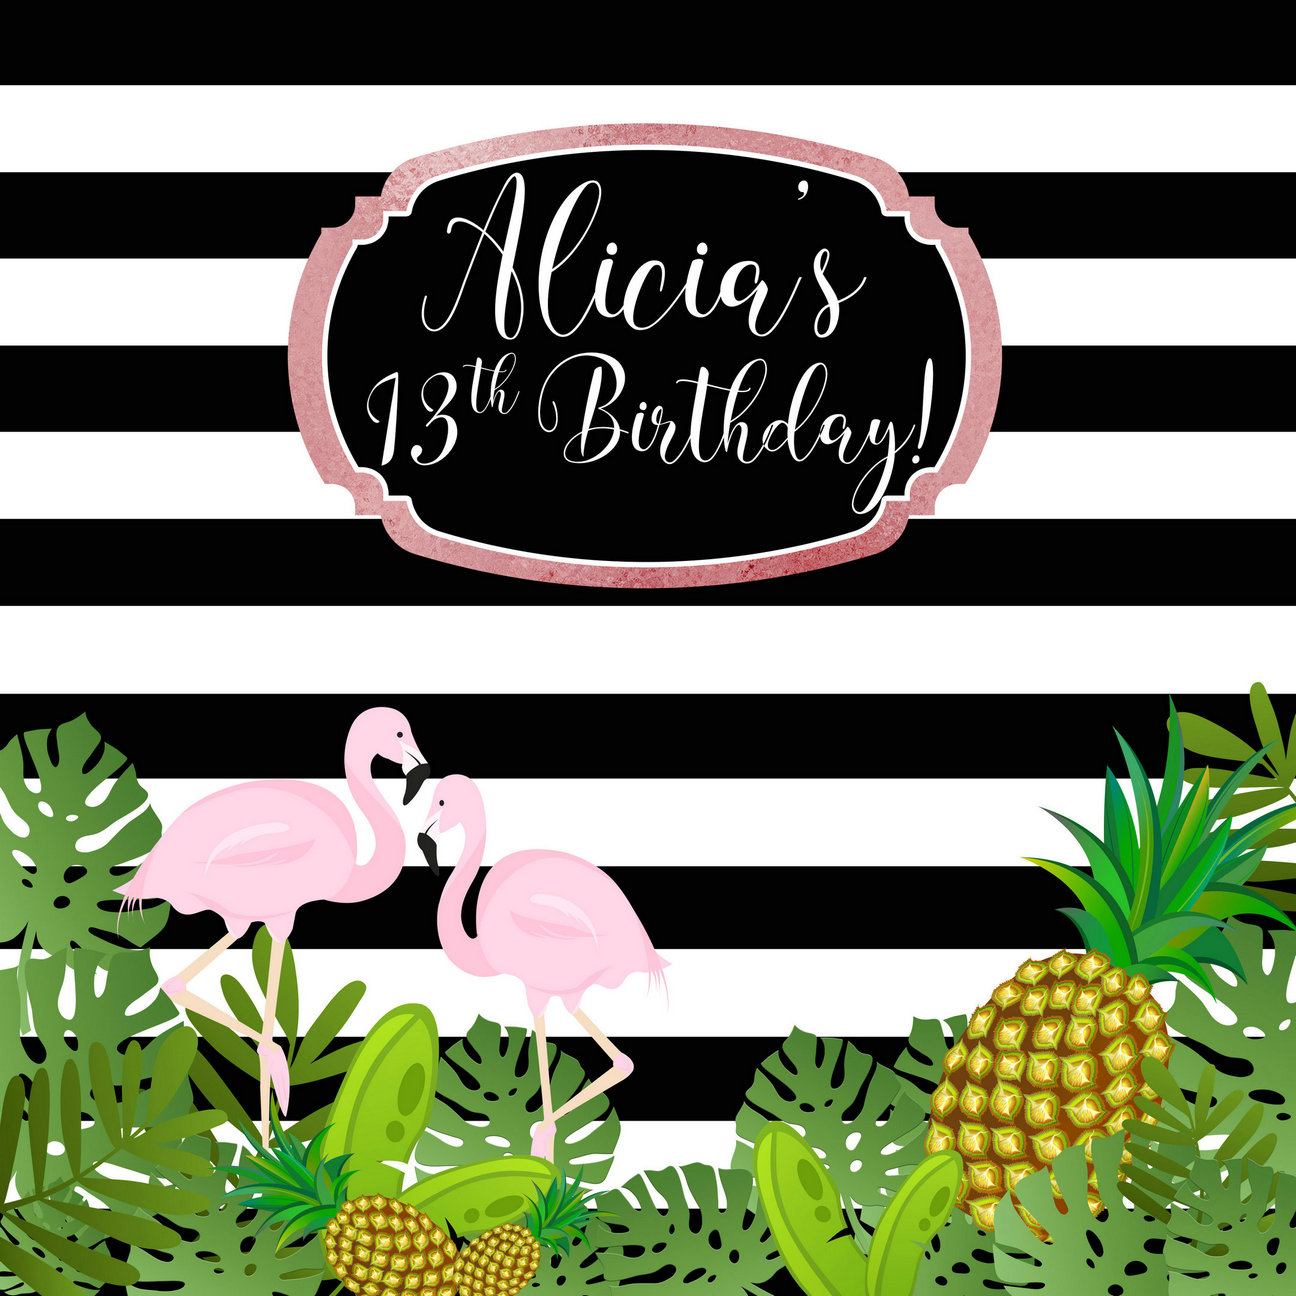 custom Flamingo Paradise Pineapple Leaves 13th Birthday Black And White Striped backgrounds Computer print party backdrop